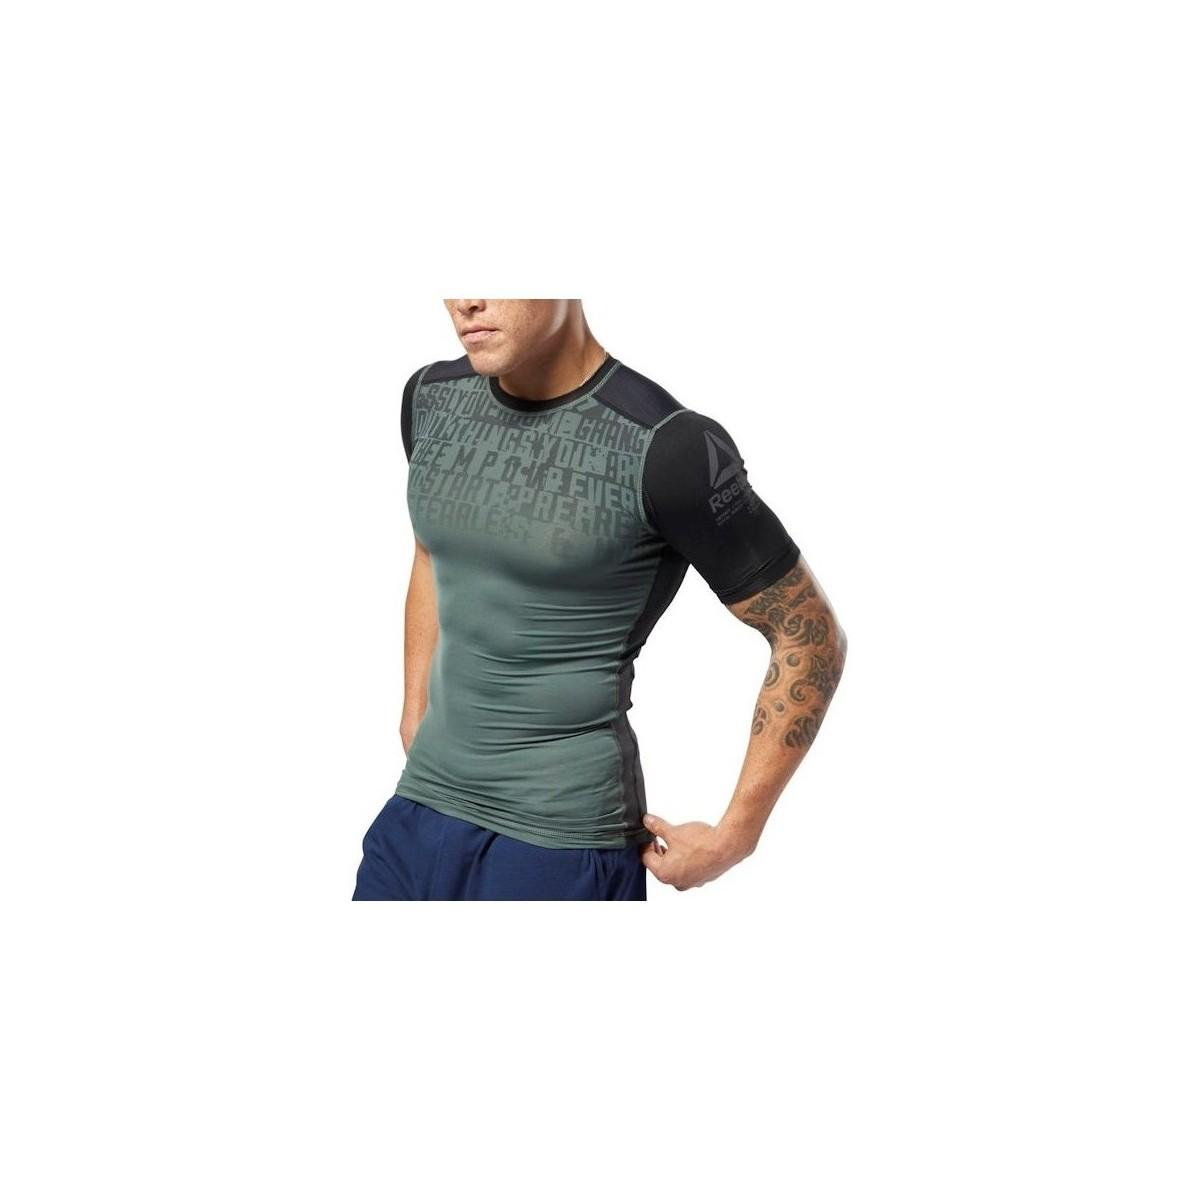 972427cca7d1 Reebok Activchill Graphic Compression Men s T Shirt In Grey in Gray ...